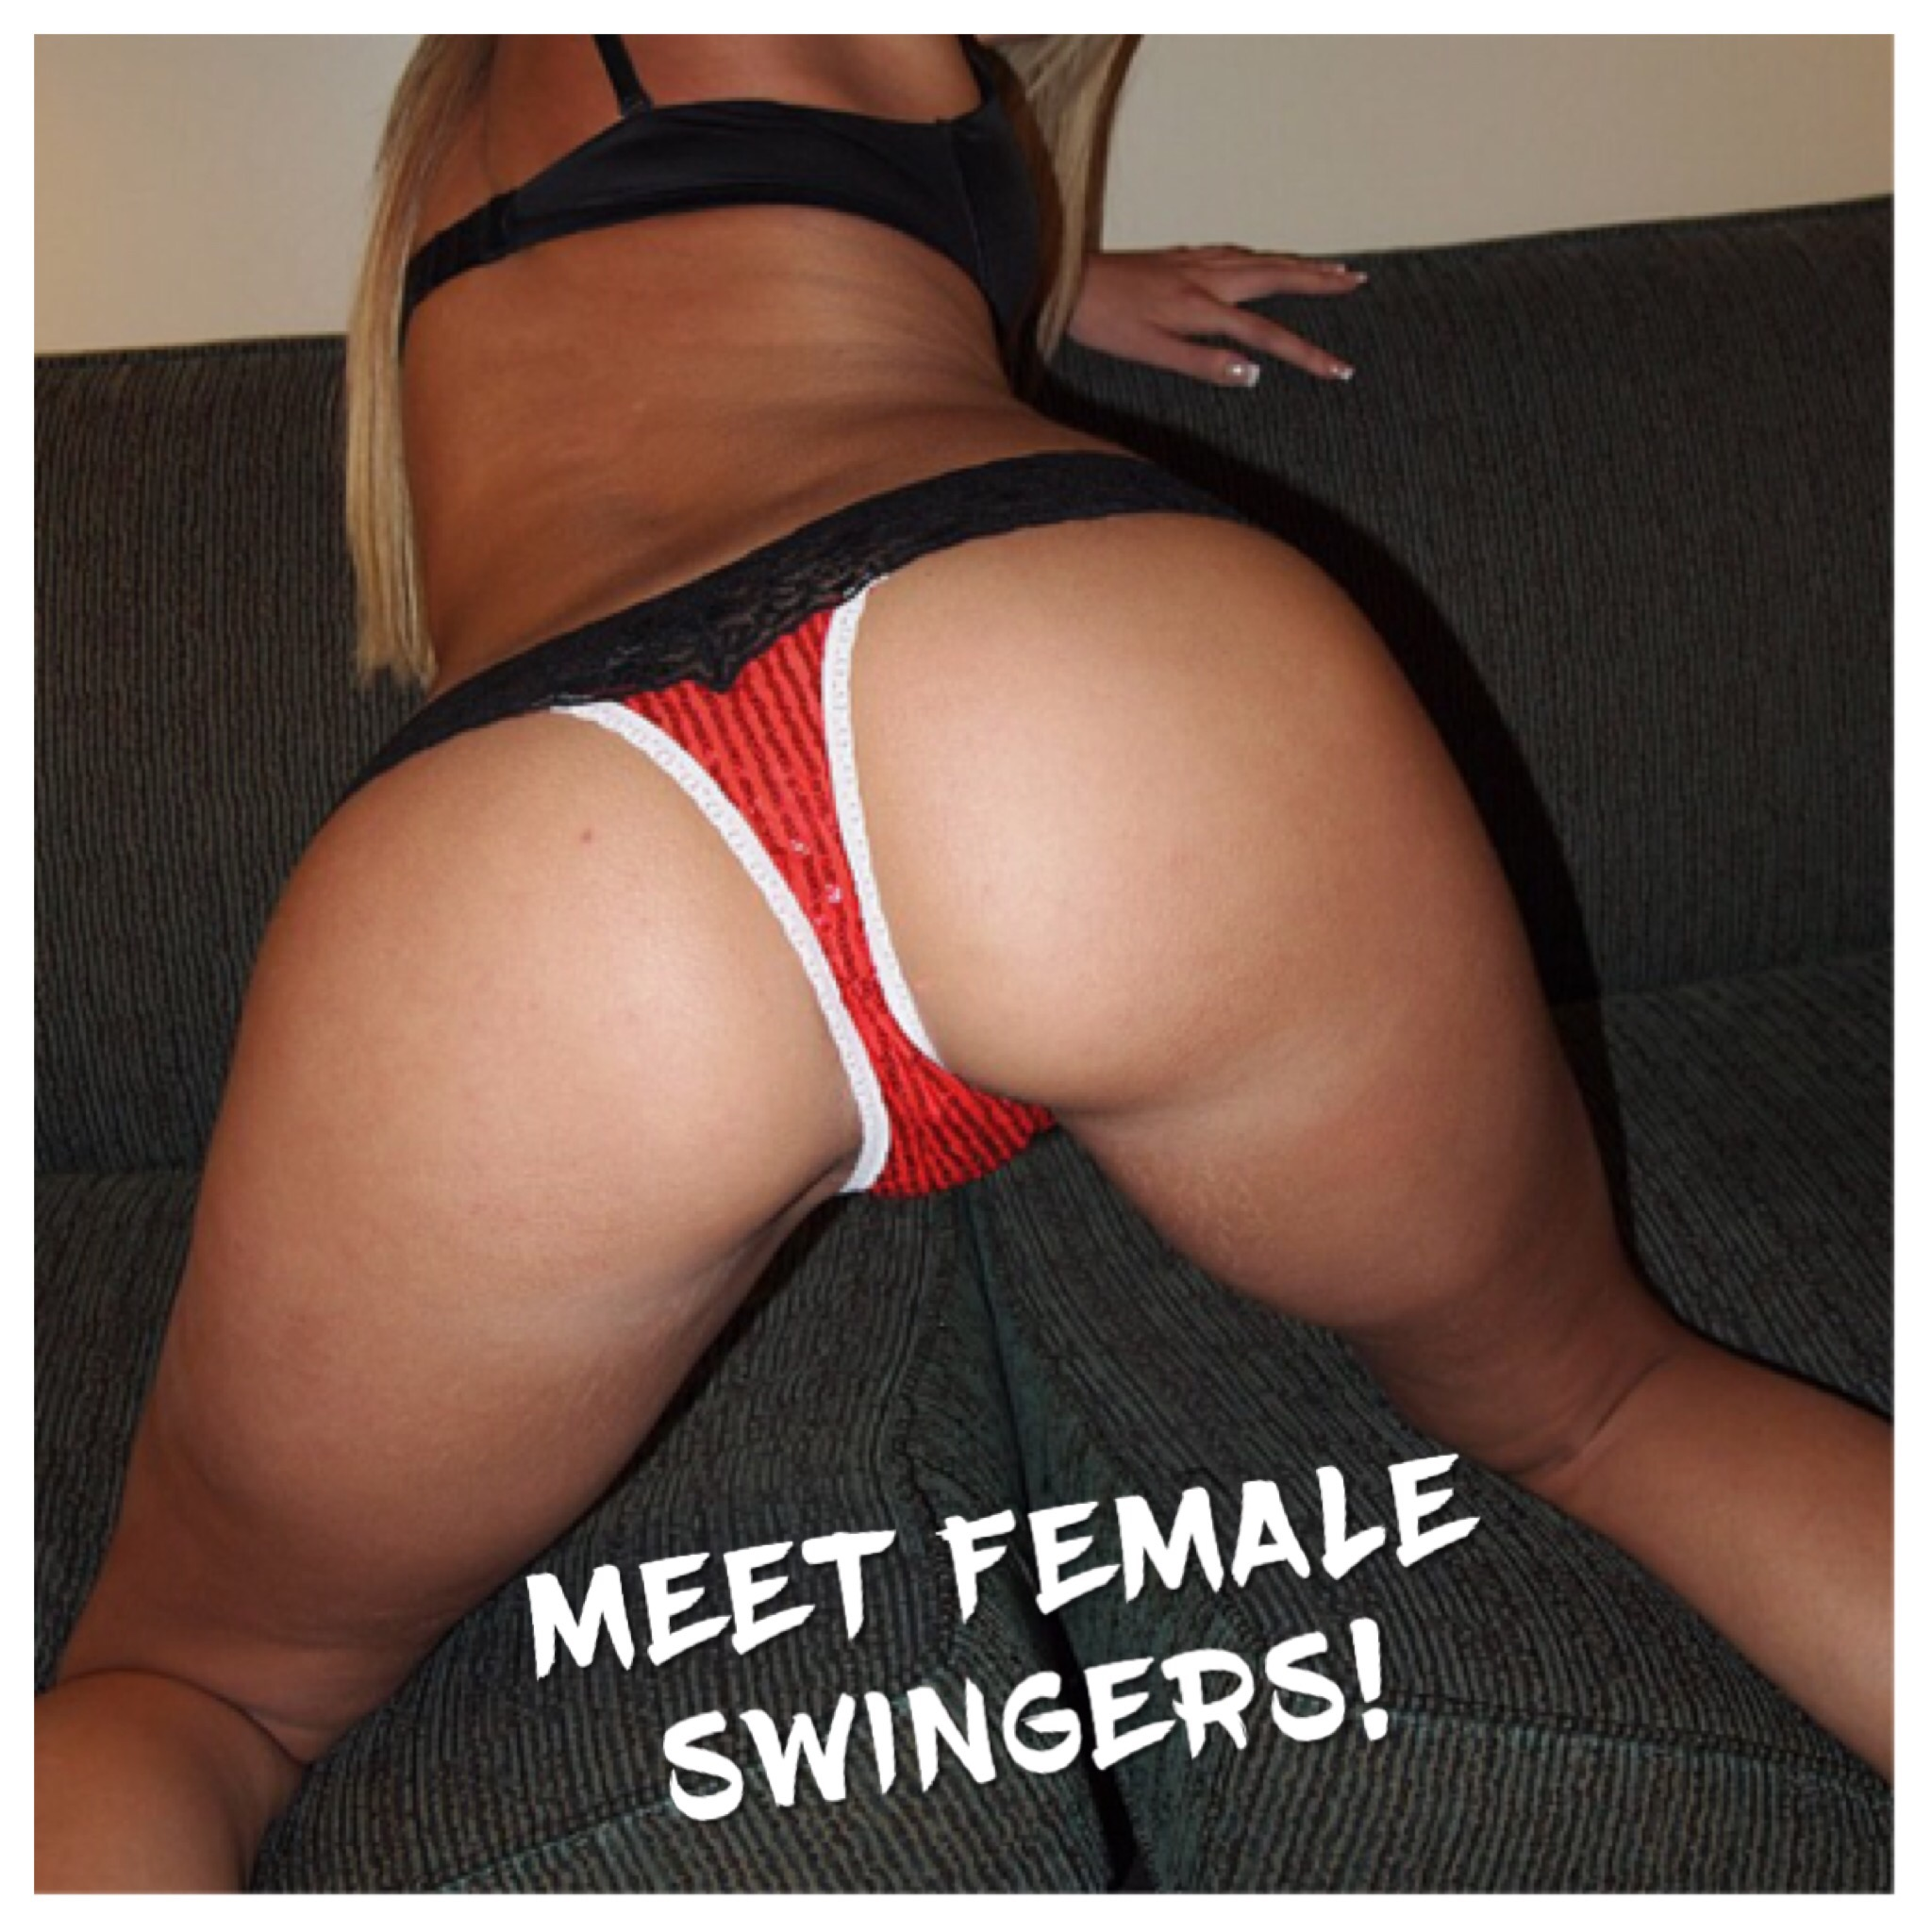 East tn swingers